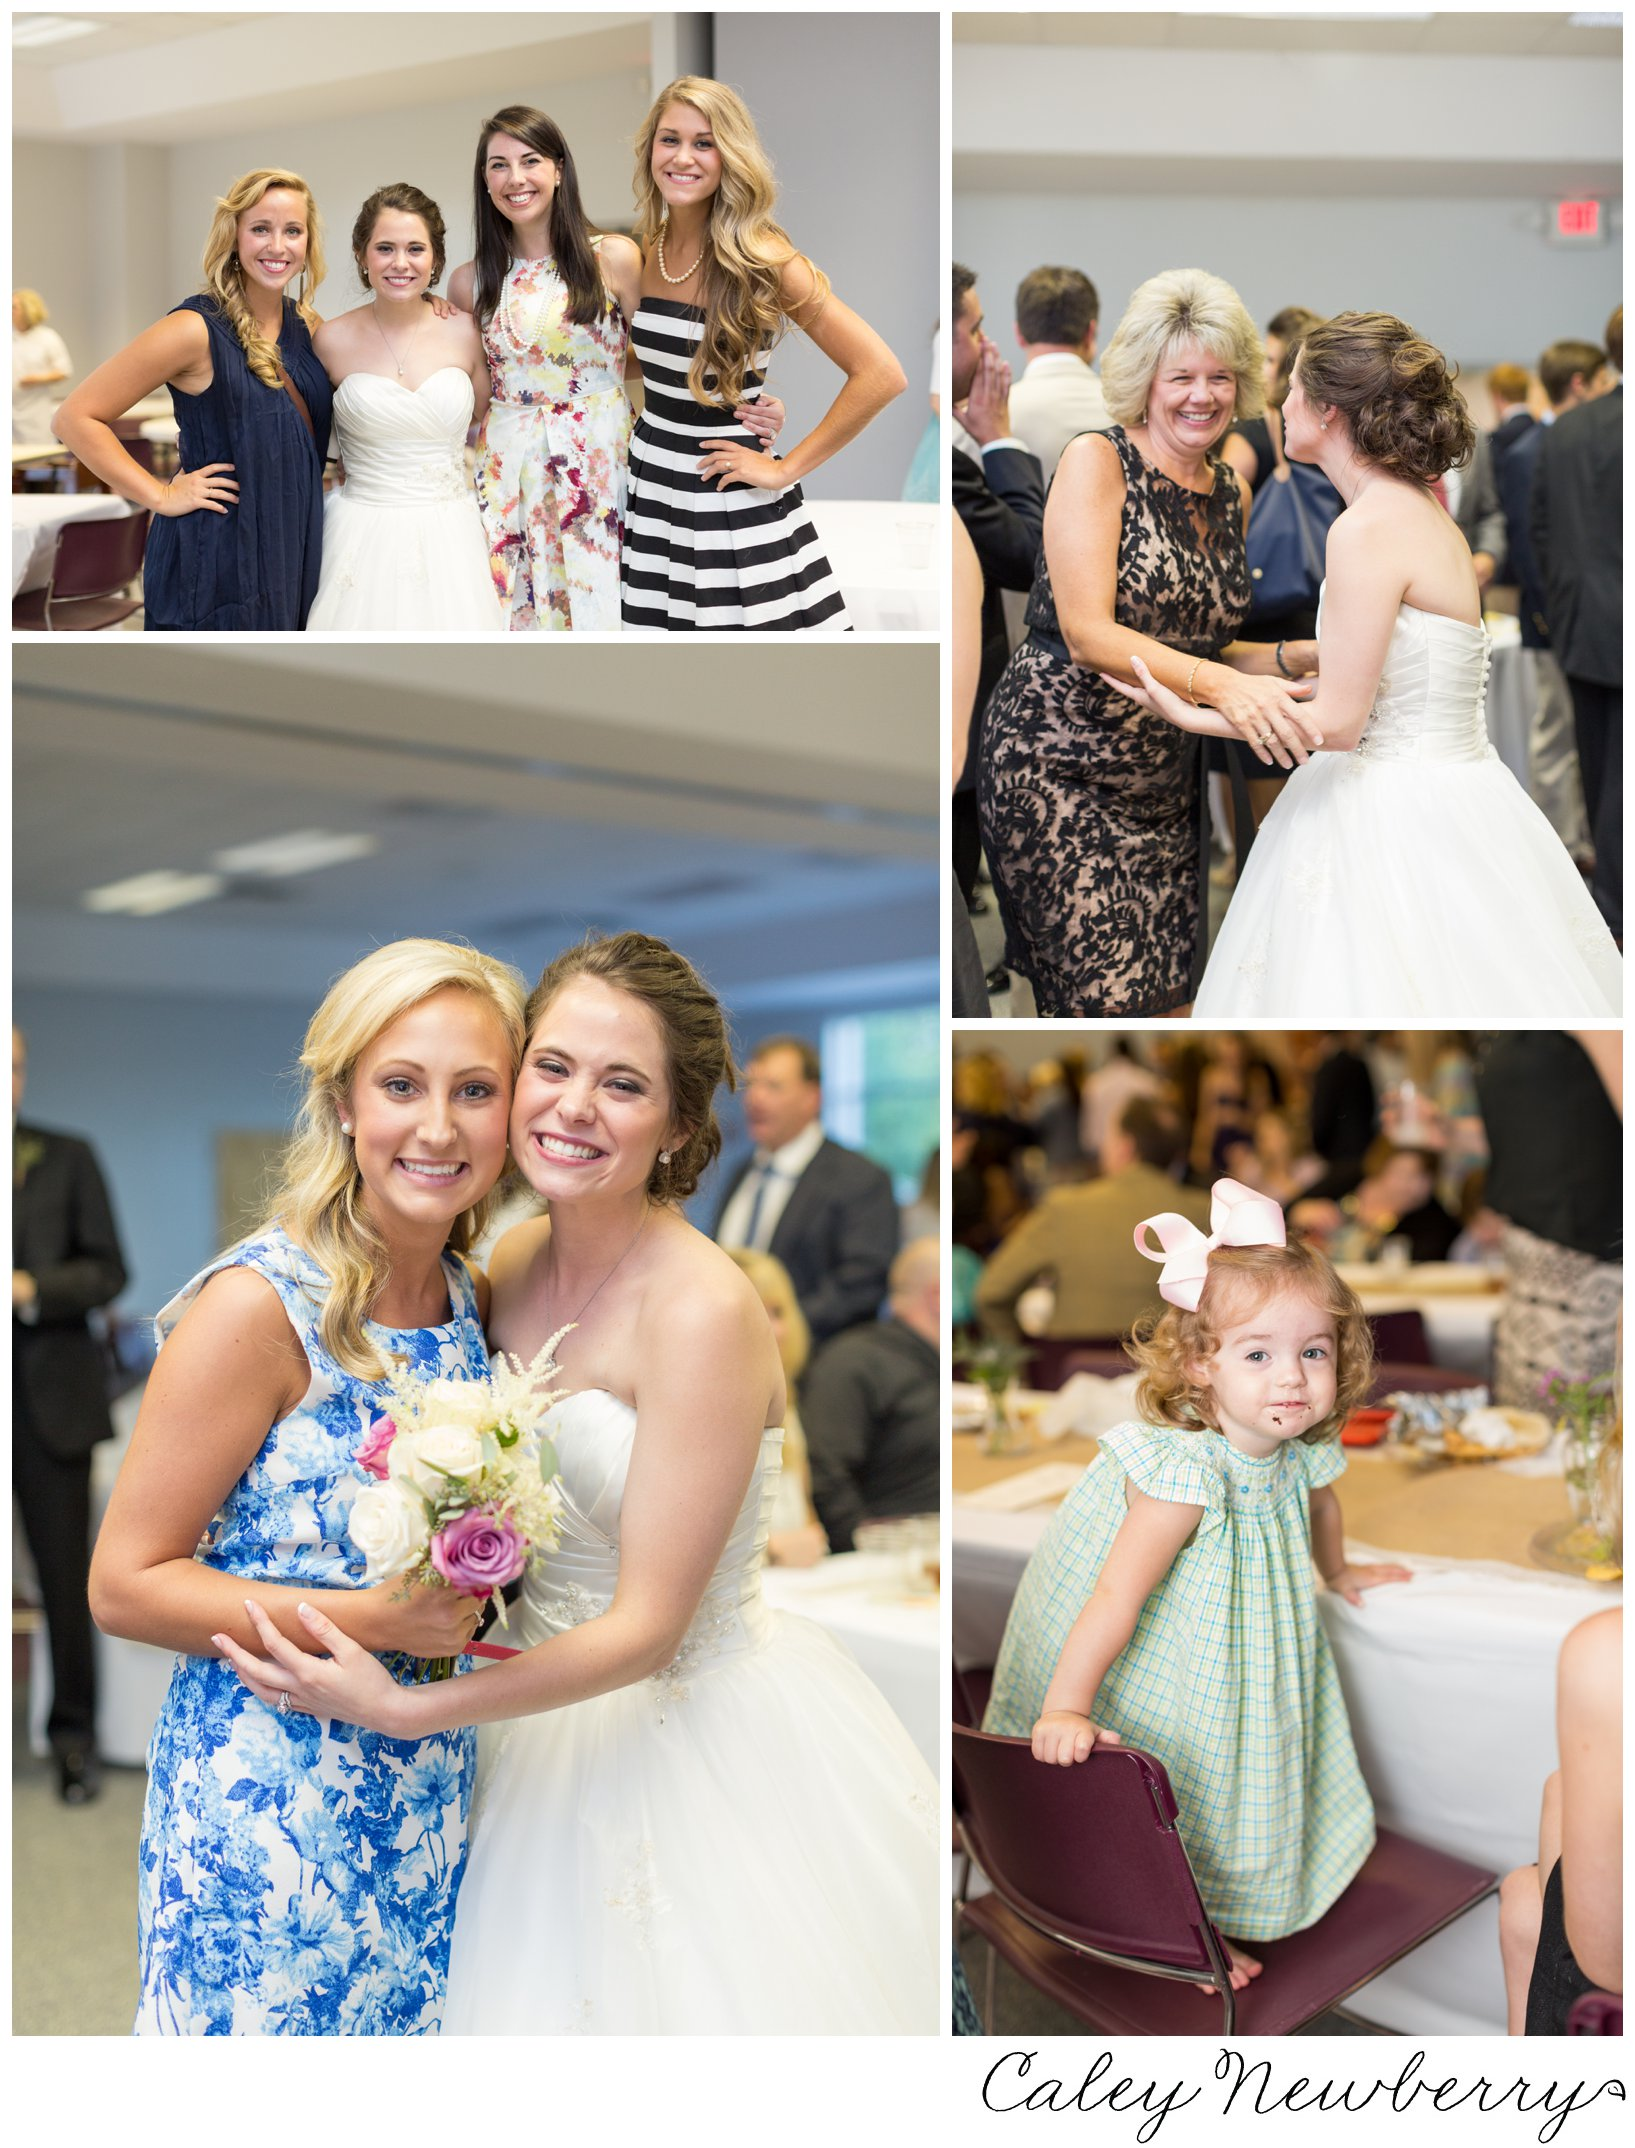 wedding-guest-candid-photos.jpg